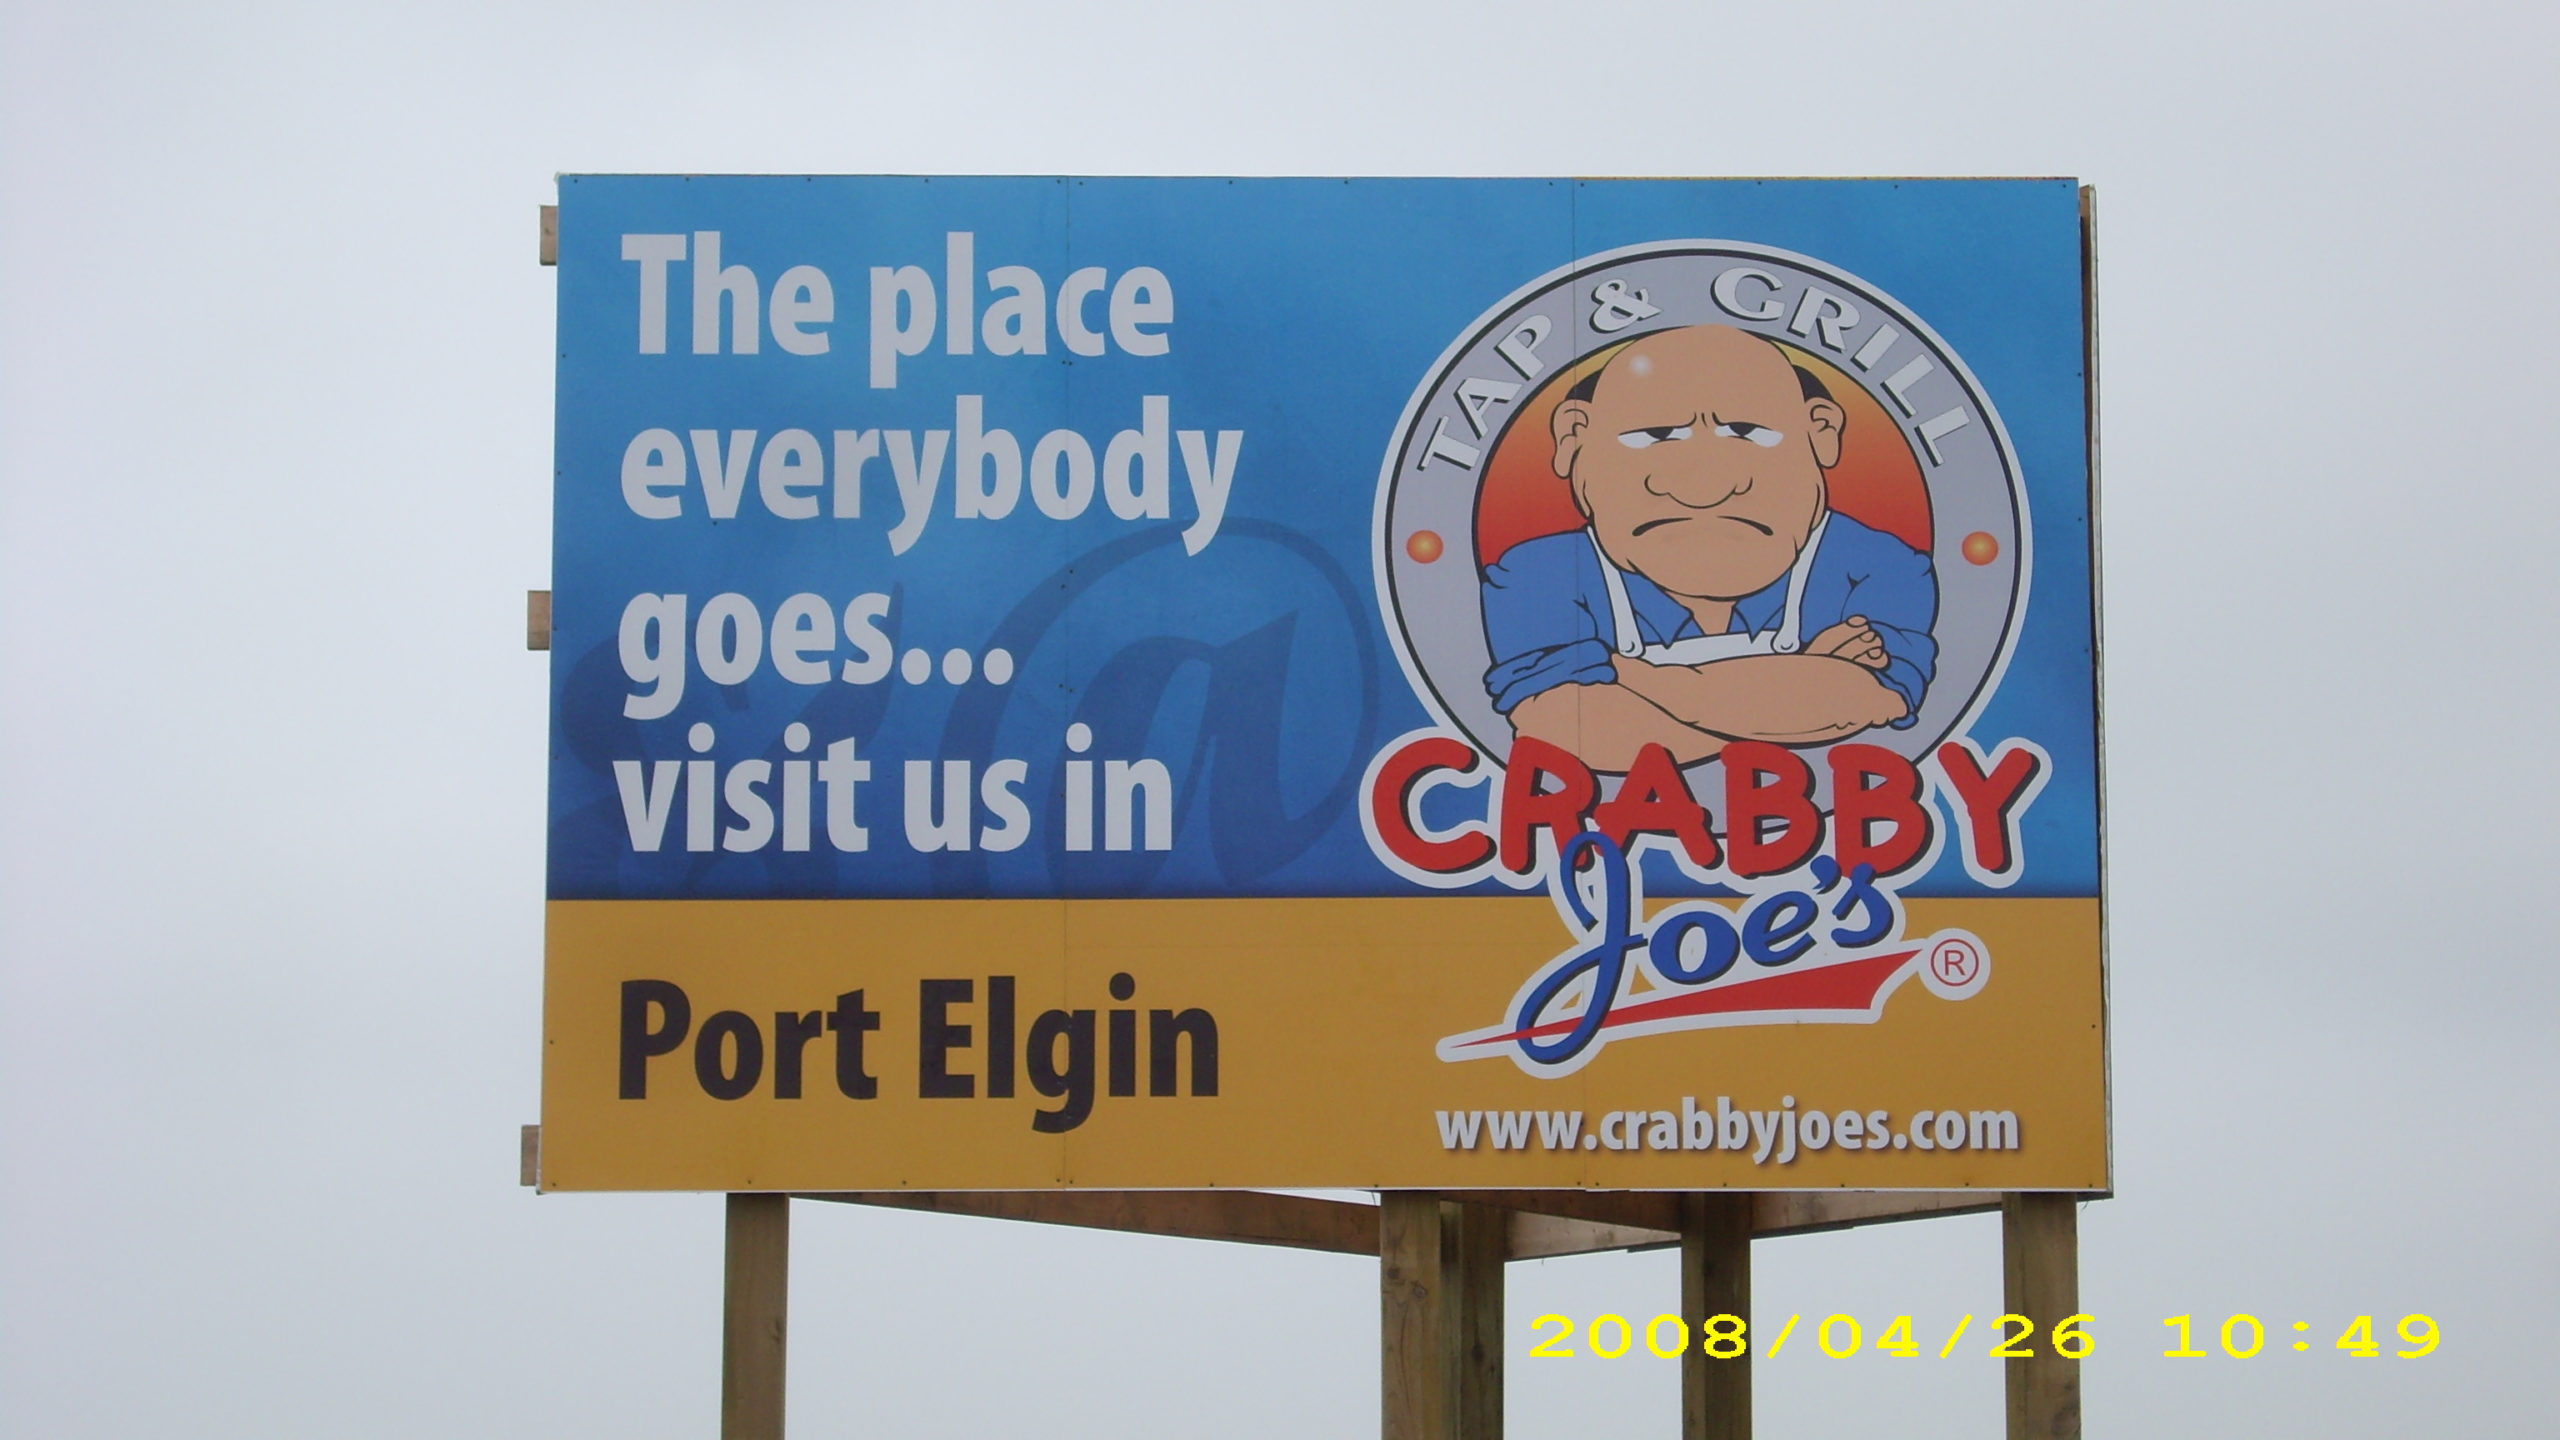 erb-signs-crabby-joes-10-scaled-1